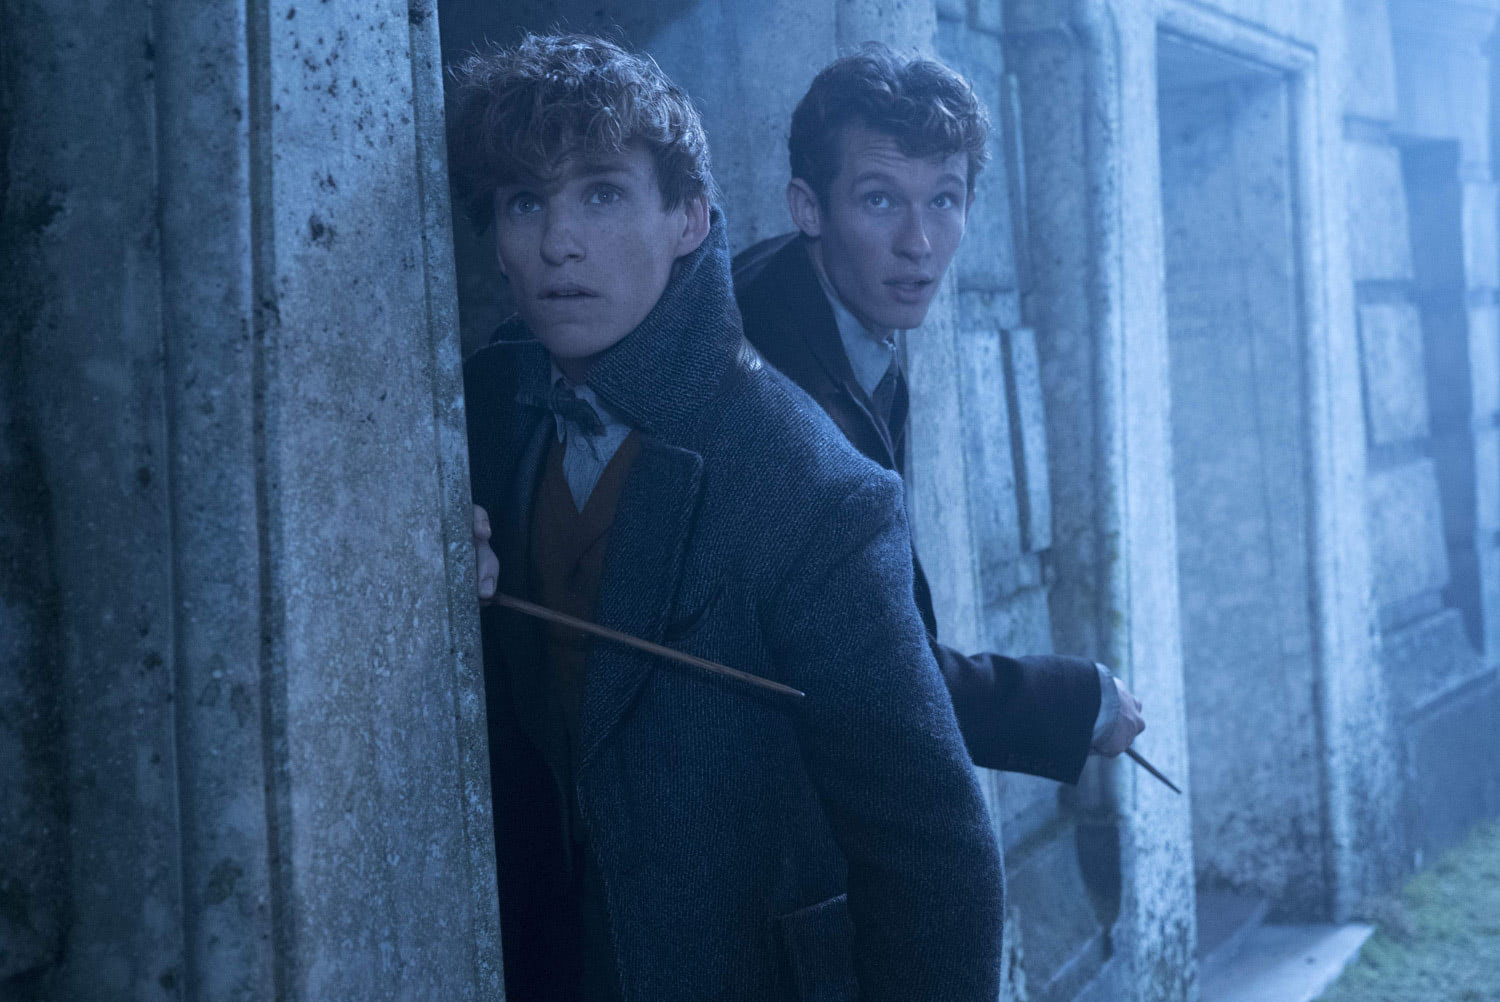 Newt and Theseus Scamander